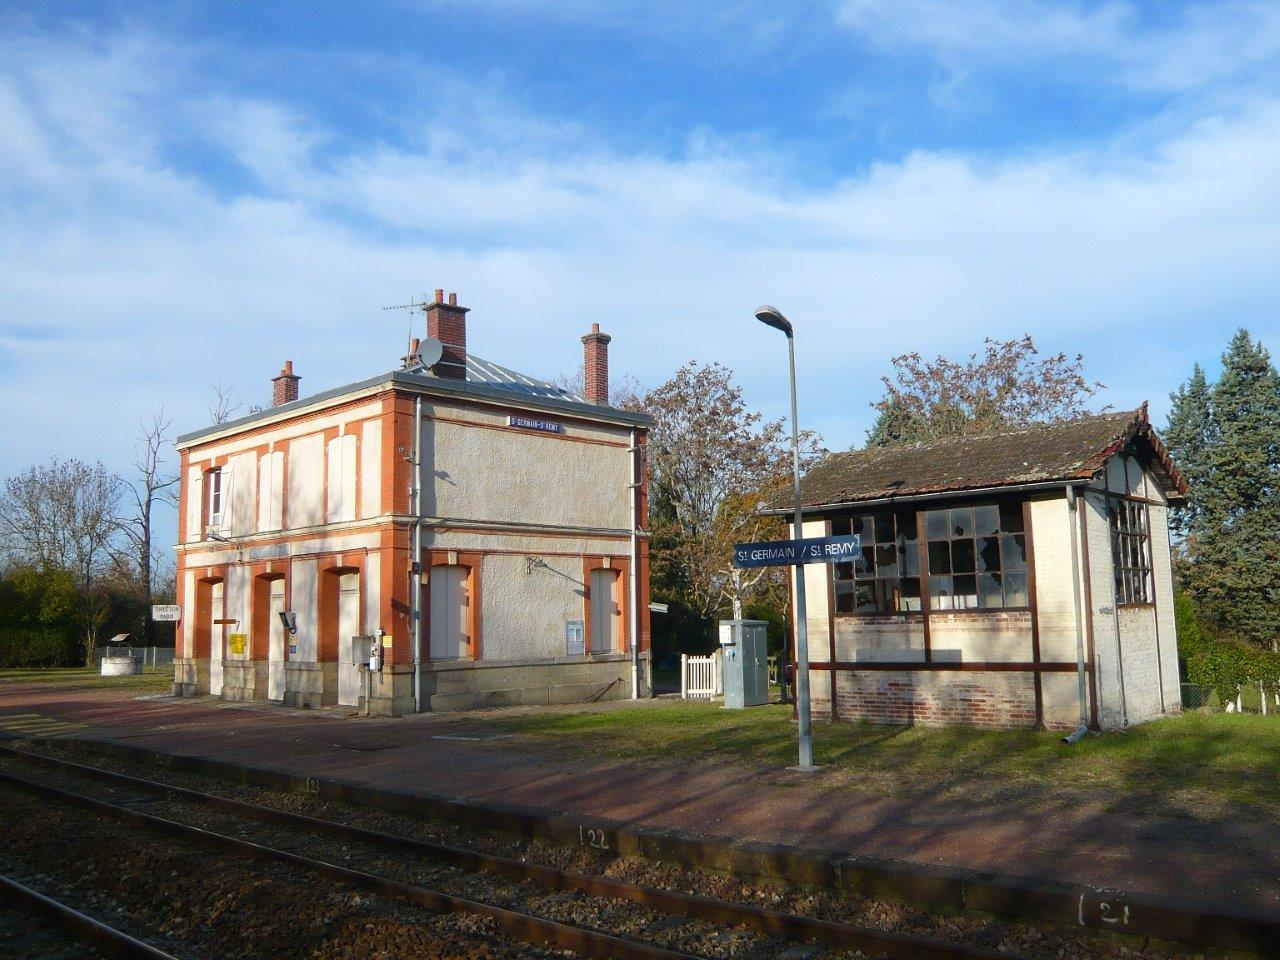 gare-de-saint-germain-saint-remy-train-station